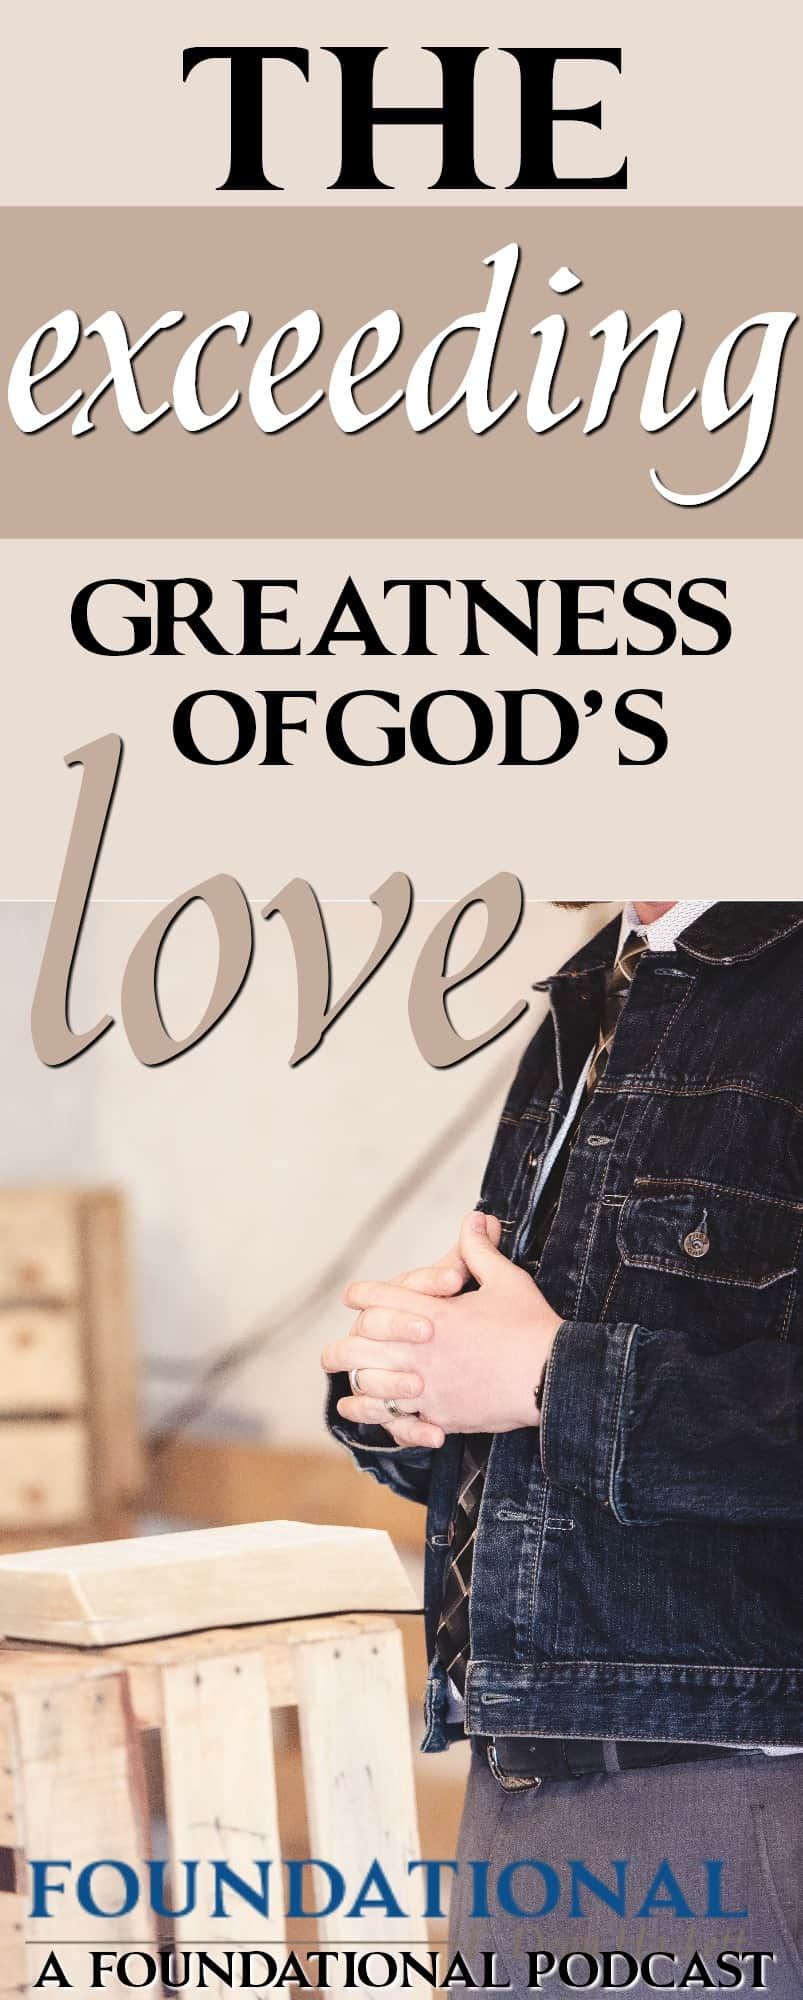 There are 5 things Ephesians tells us about the love of God that most have never really comprehended before. These five things about God's love will radically change your life. Listen to the podcast to find out what they are.